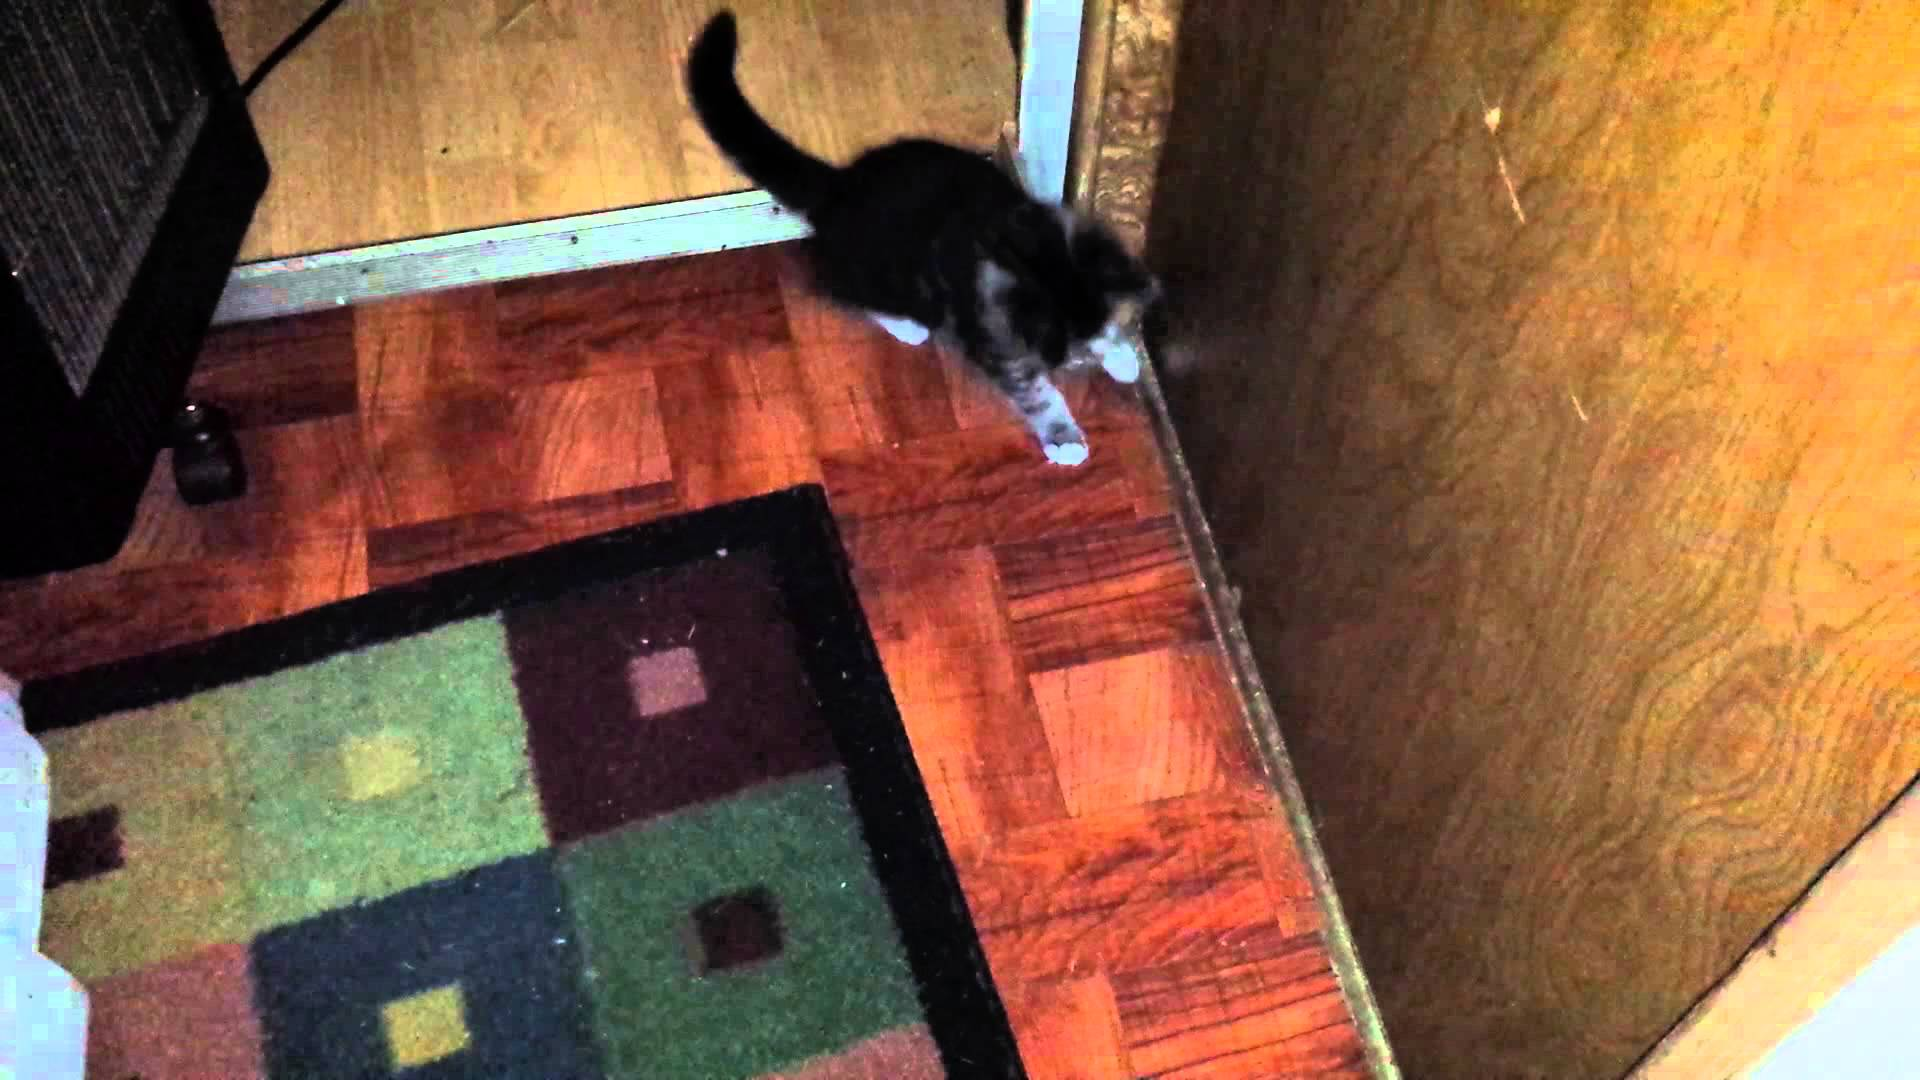 Tiny Kitten Attacks the Paw of an Unseen Grunting Monster on the Other Side of a Door